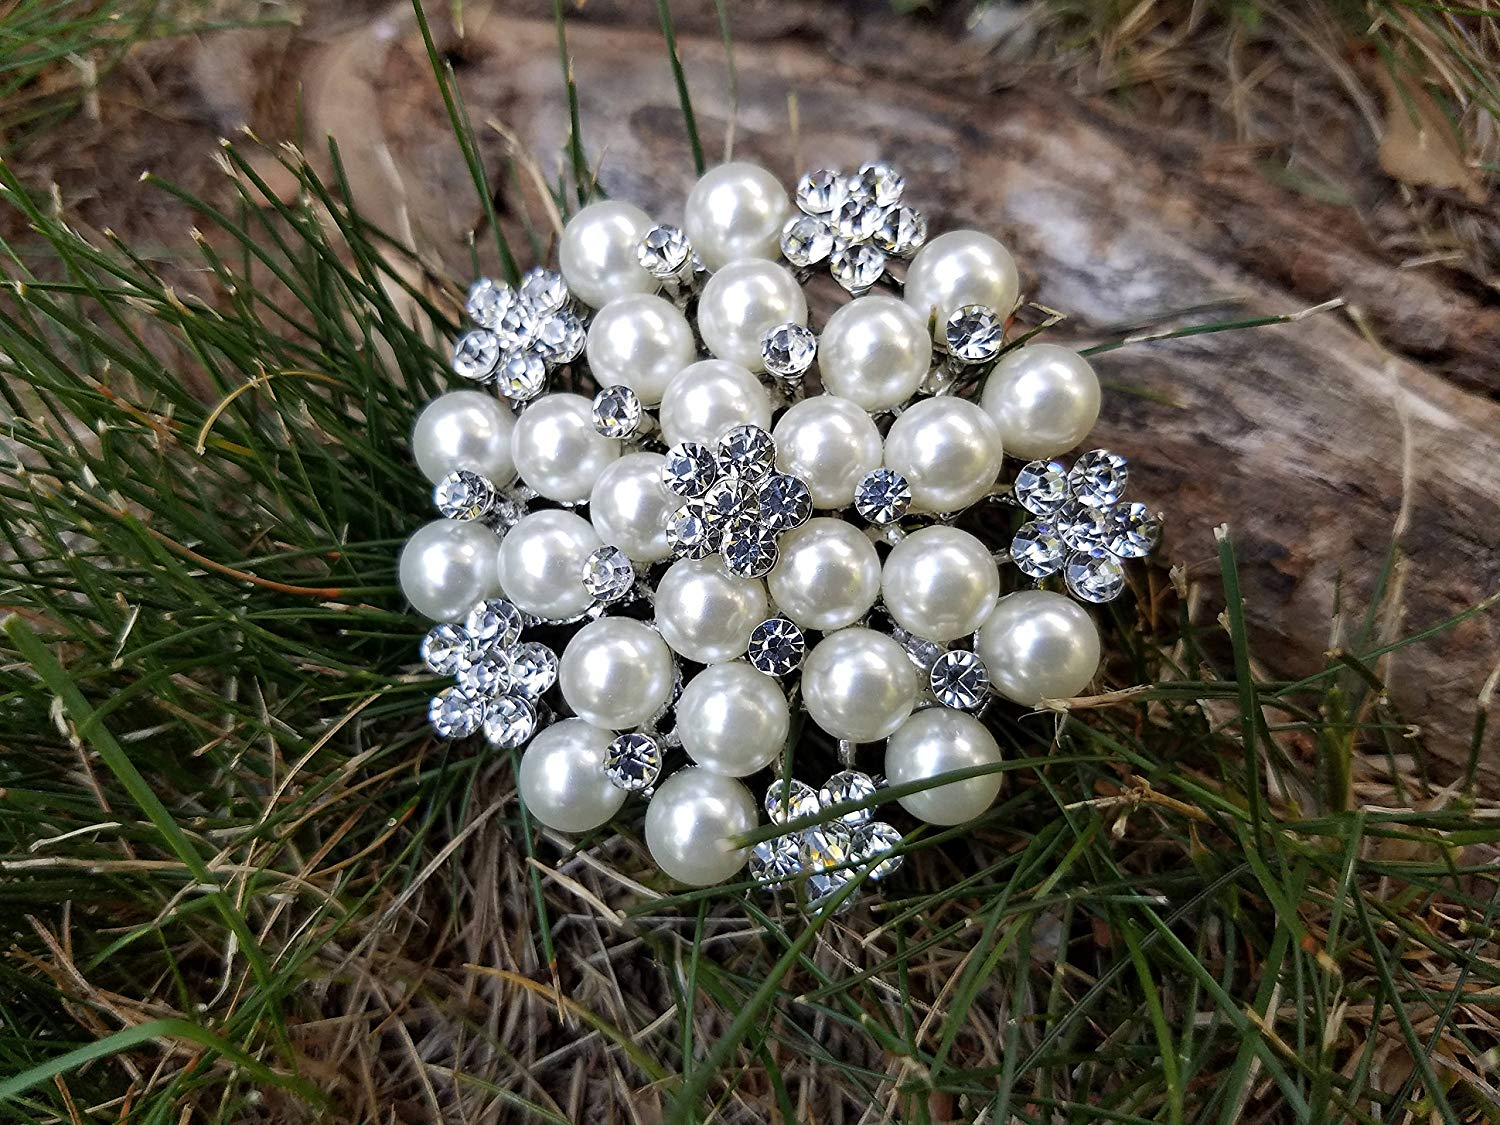 99b6e7a4891 Get Quotations · Silver Pearl Rhinestone Flat Back Embellishment Brooch Pin  Clear Crystal Pearl Wedding Broach Silver Pearl Brooch